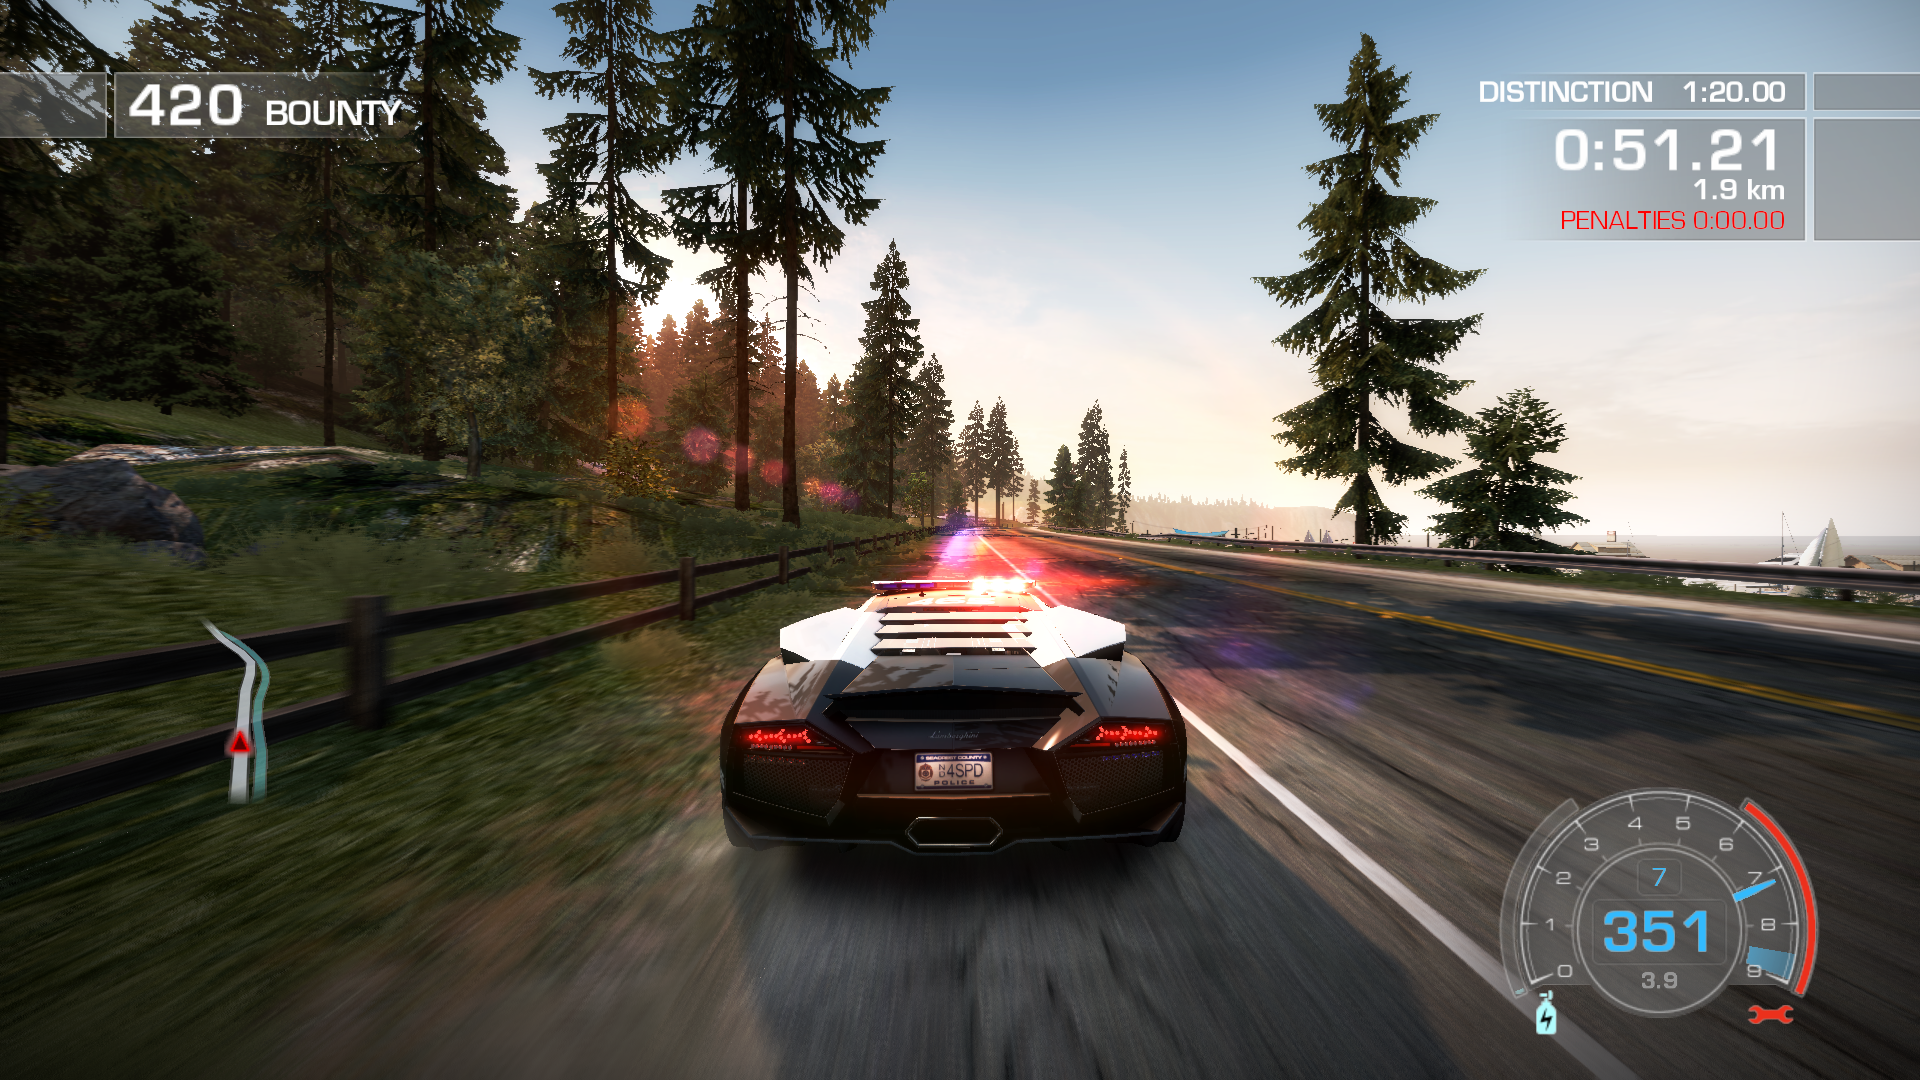 Need for Speed: Hot Pursuit Windows They show you the ultimate car and then make you work for it hours and hours.